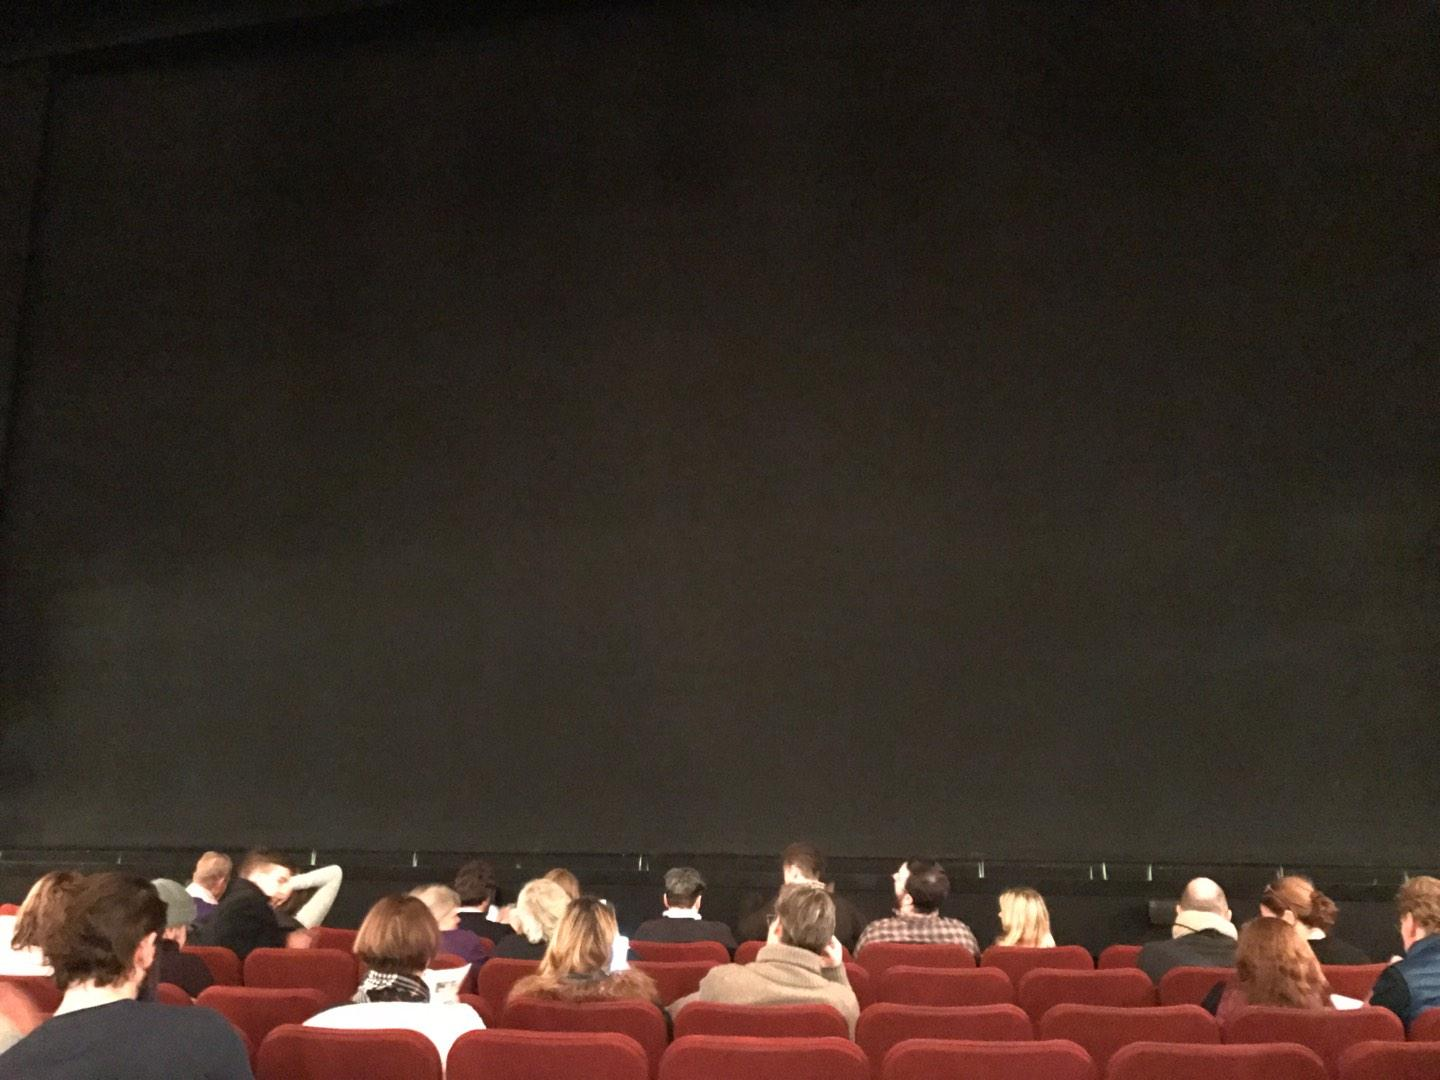 Ethel Barrymore Theatre Section Orchestra Row F Seat 112